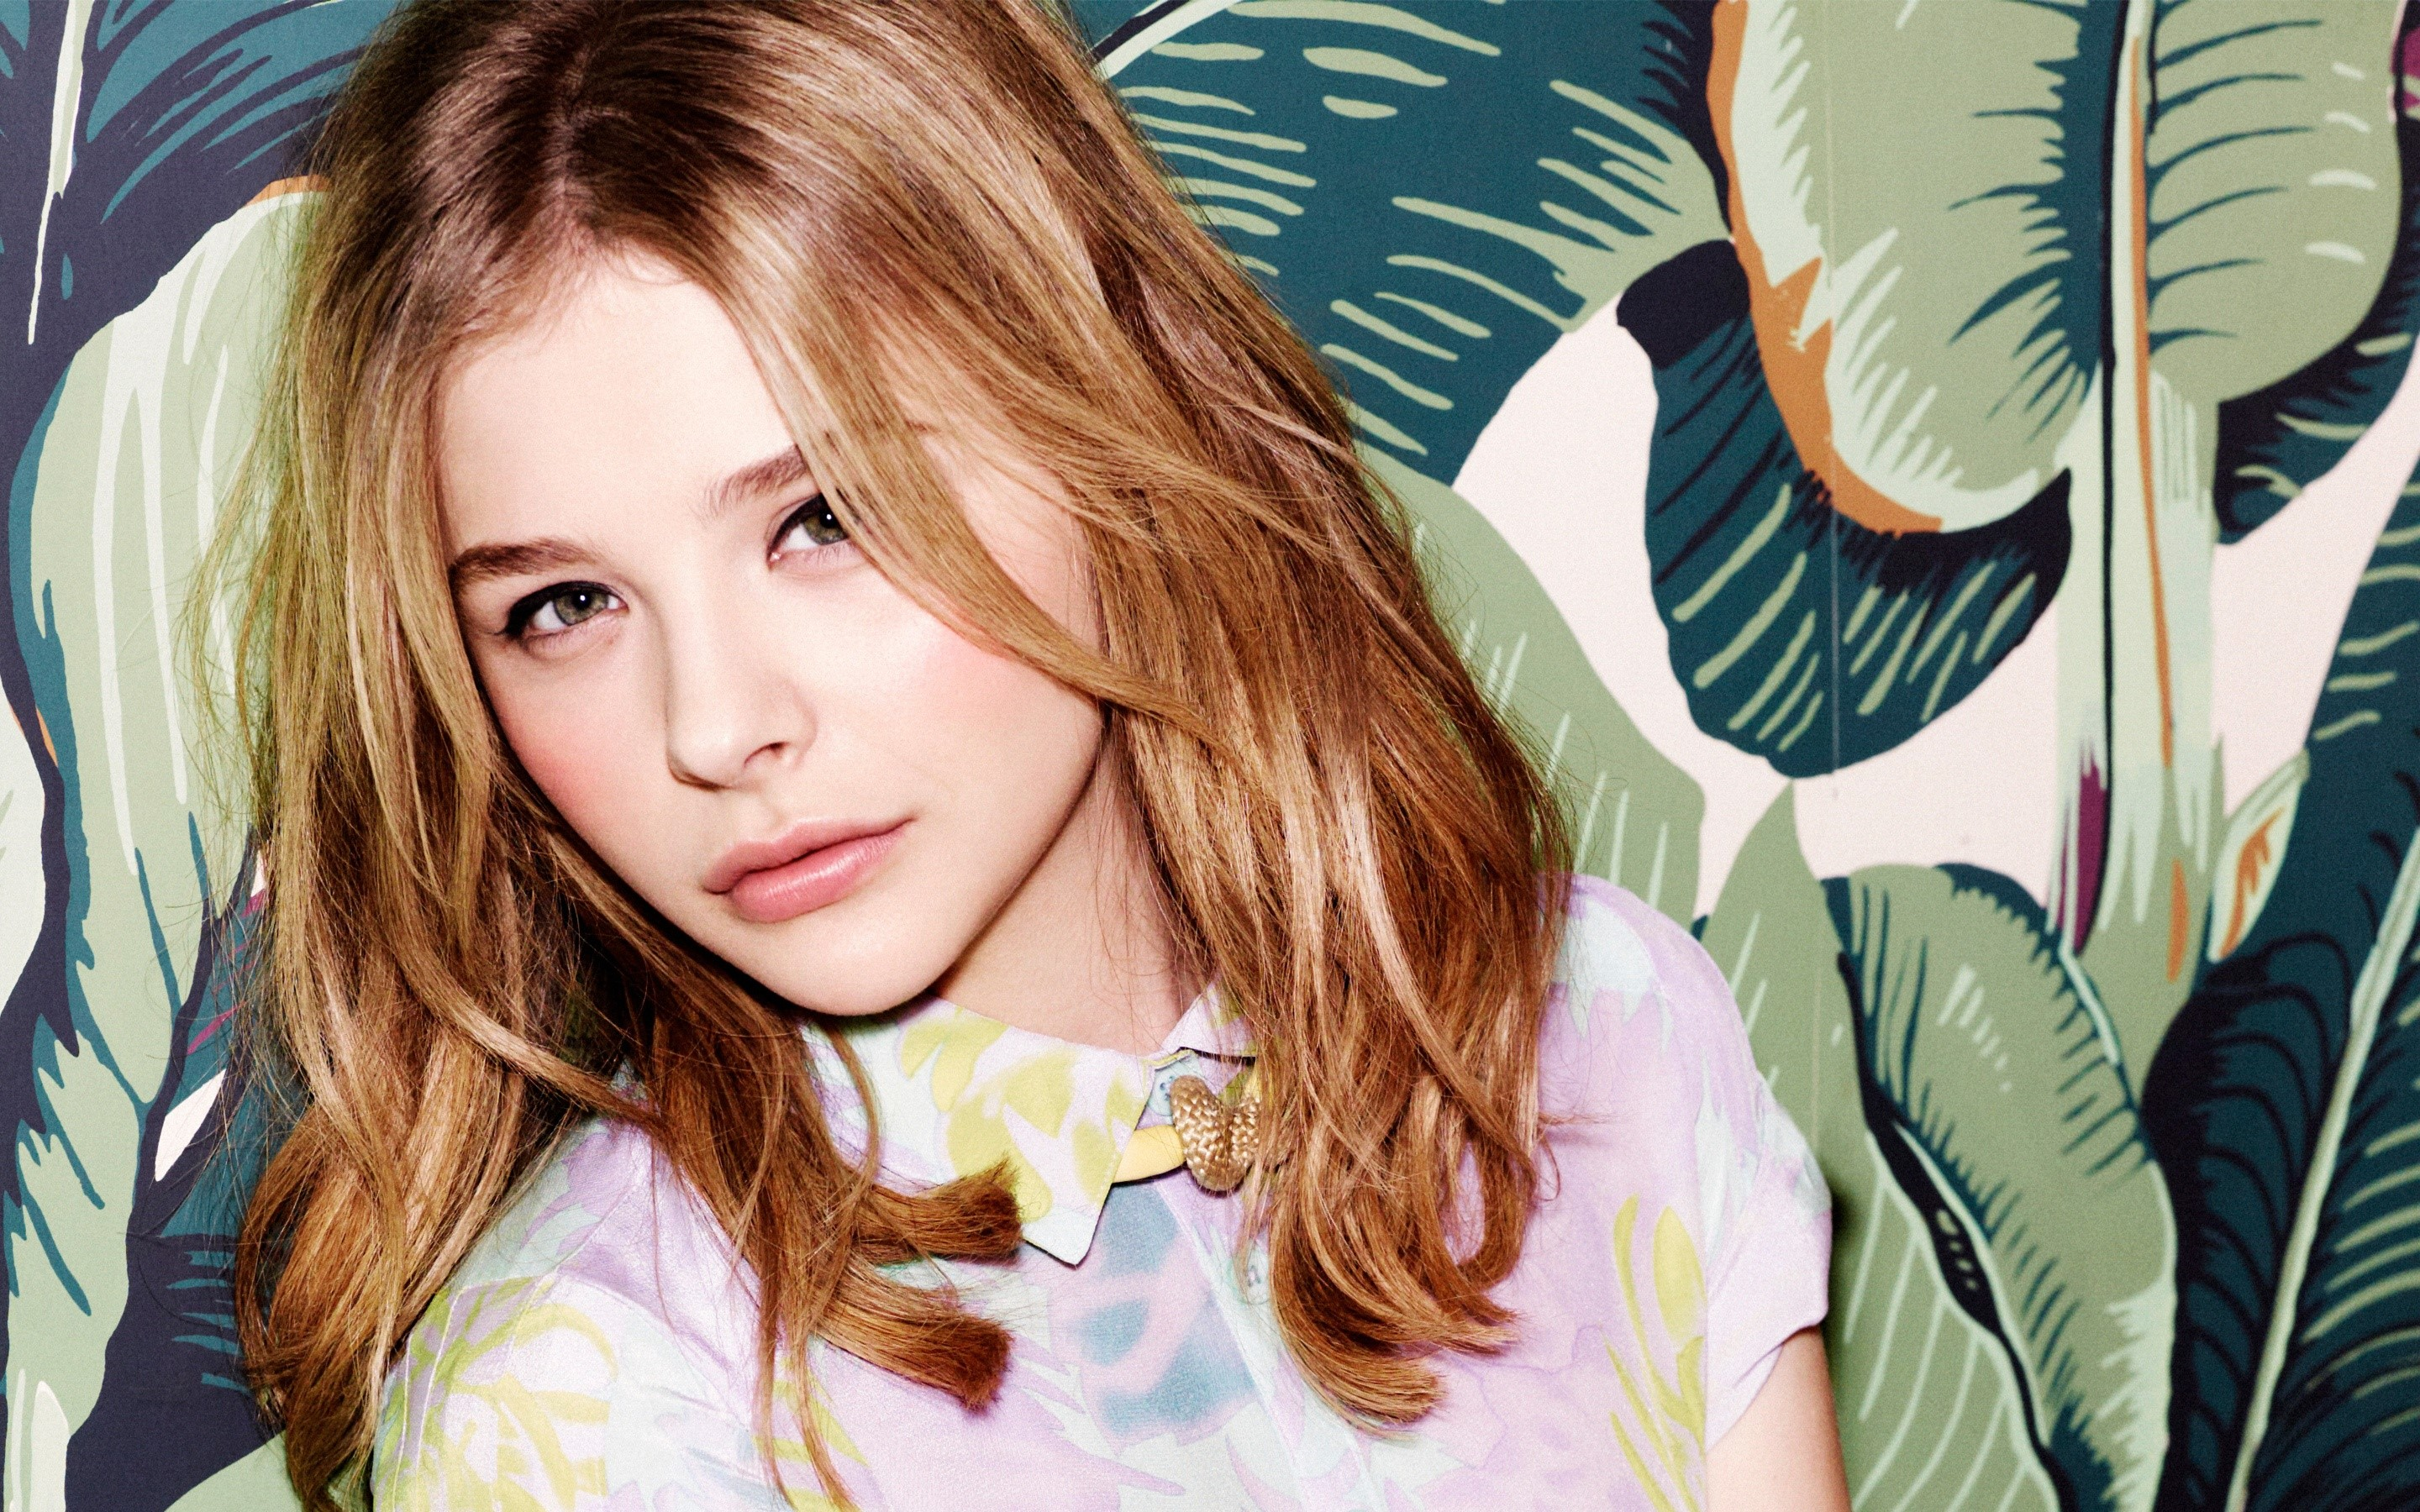 Wallpaper Actress Chloe Moretz Blonde